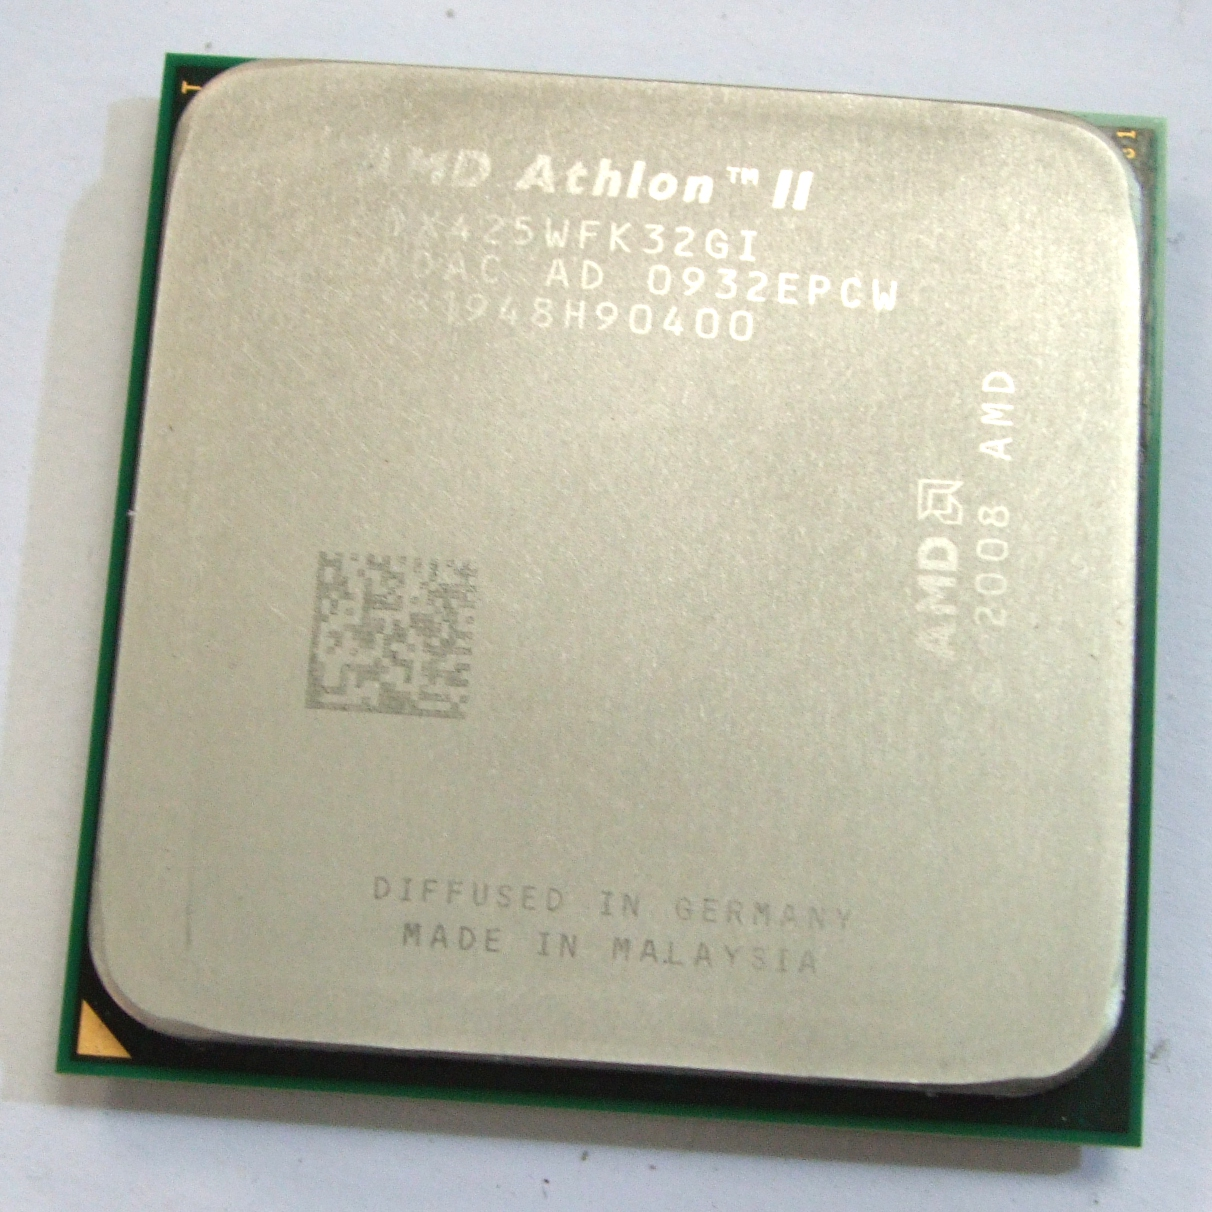 ADX425WFK32GI AMD 2.7GHz Athlon II X3 425 AM2+ AM3 CPU Processor